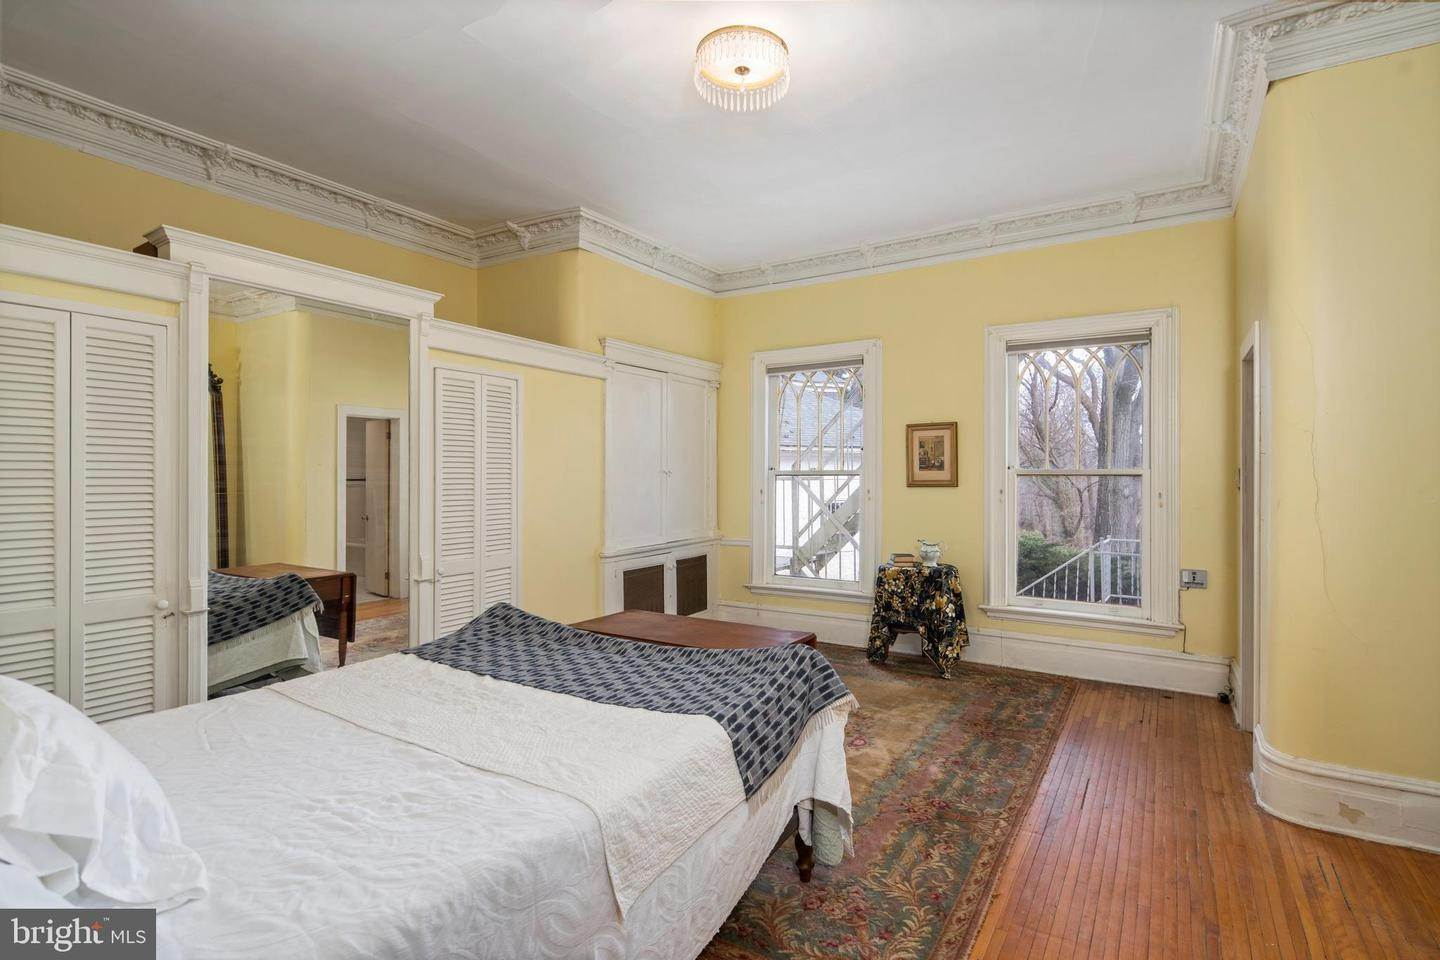 29. Single Family Homes for Sale at Easton, Pennsylvania 18042 United States